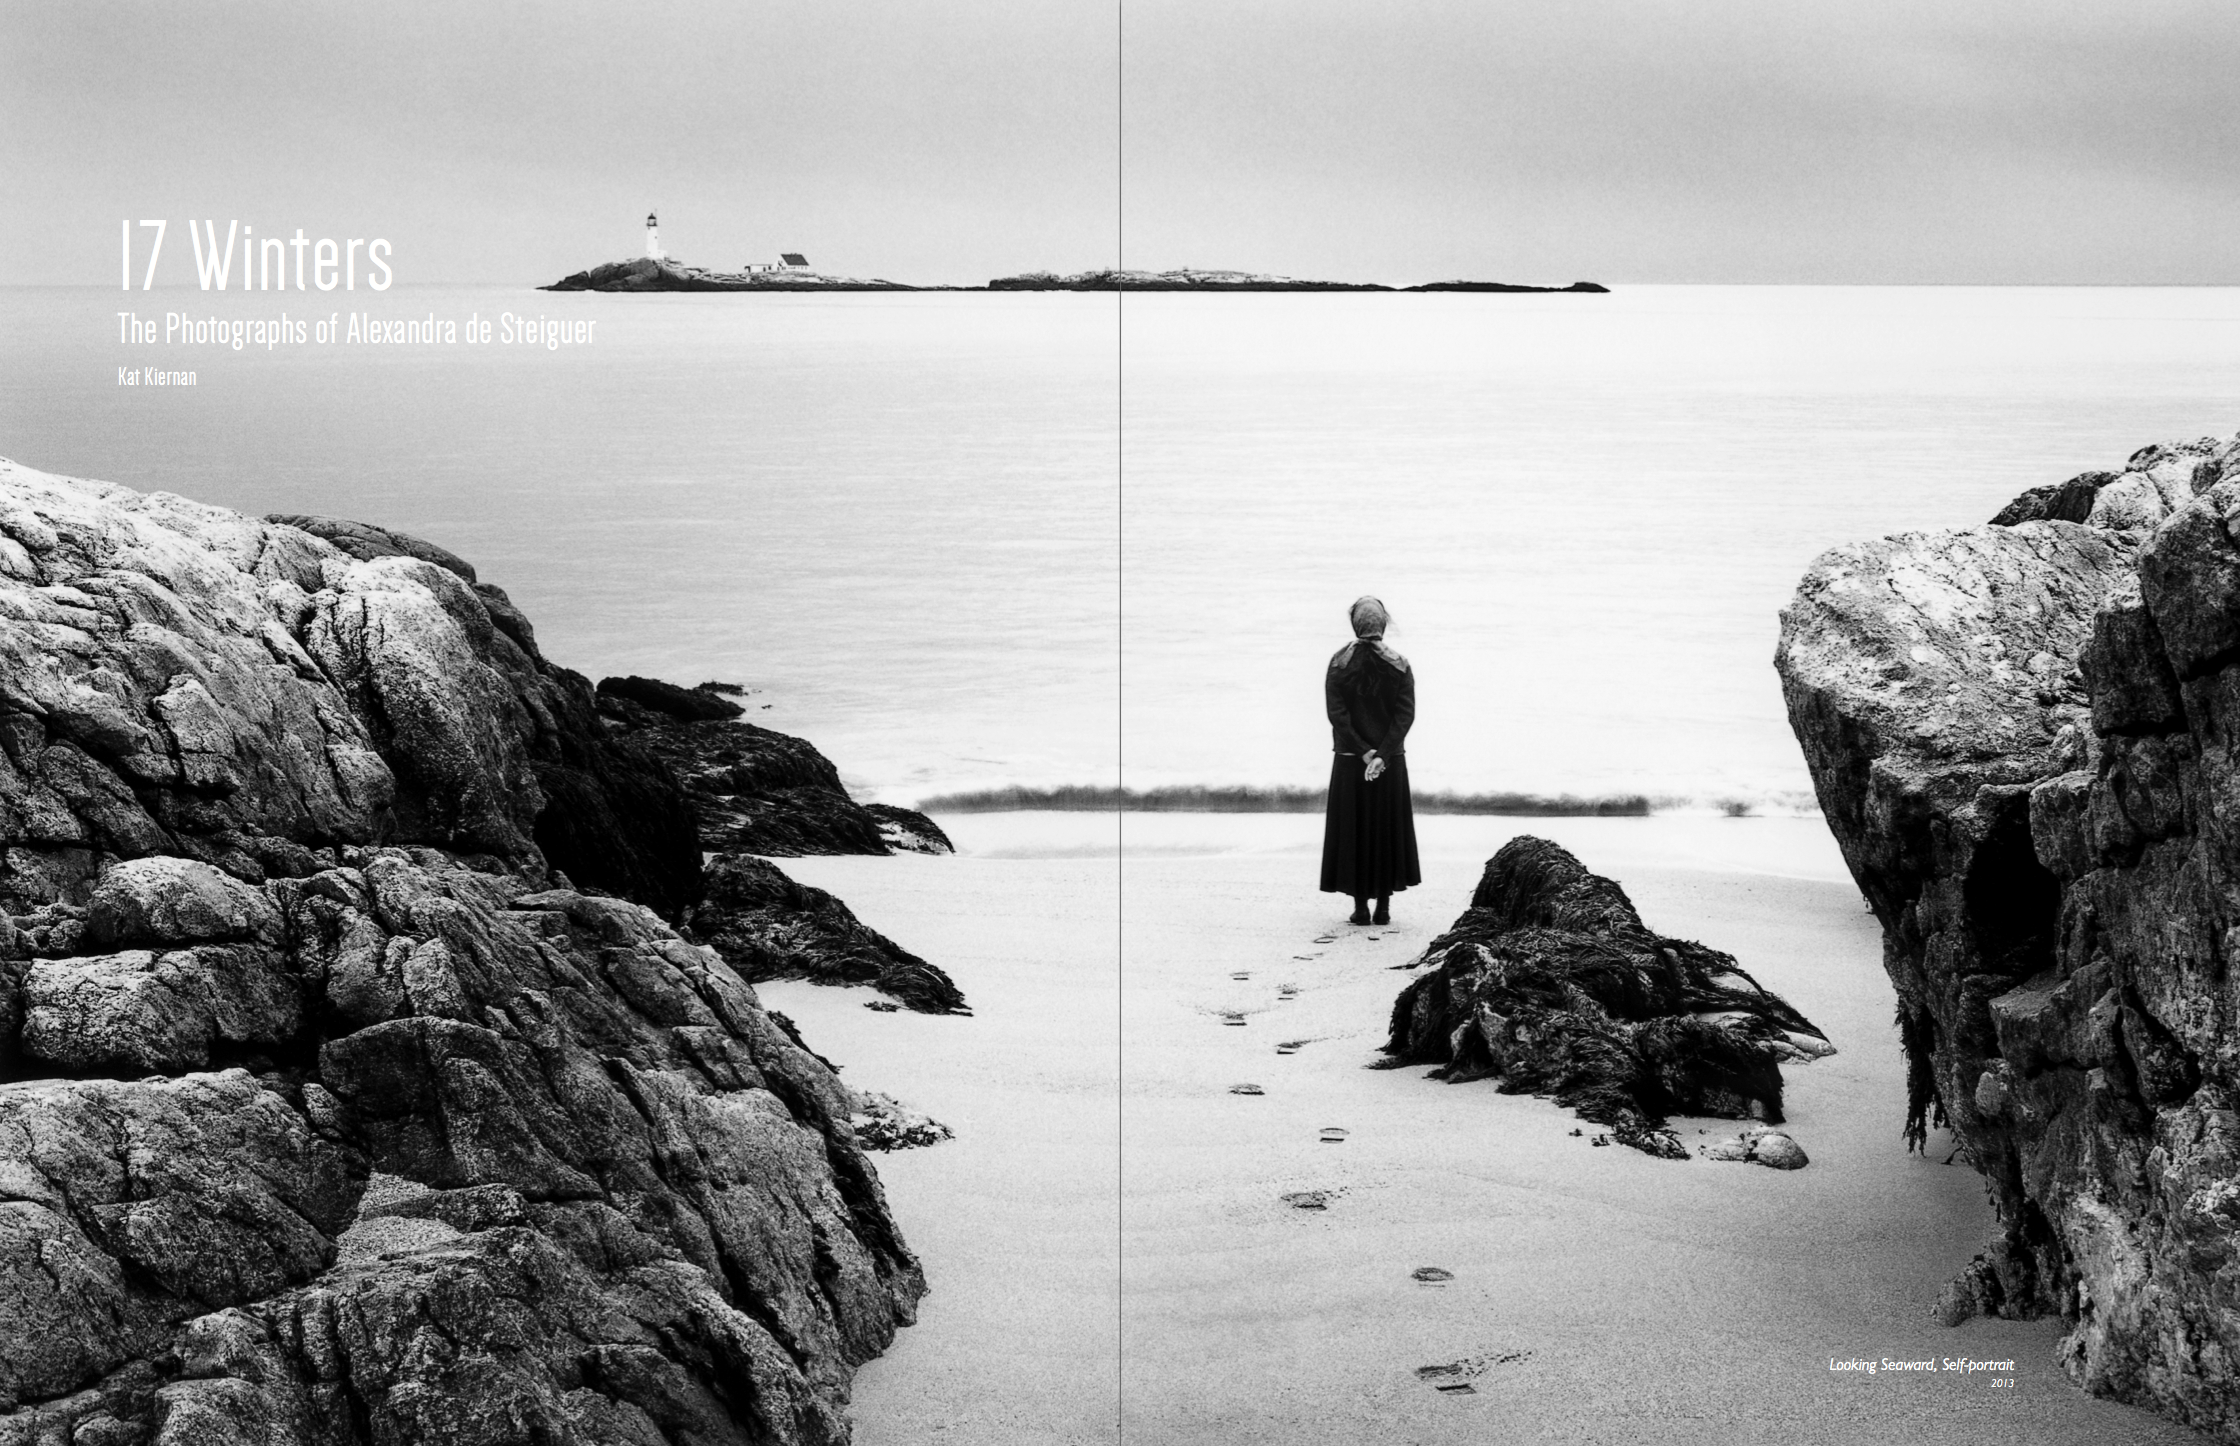 17 Winters: The Photographs of Alexandra de Steiguer  Don't Take Pictures, Issue 3 (September 2014)